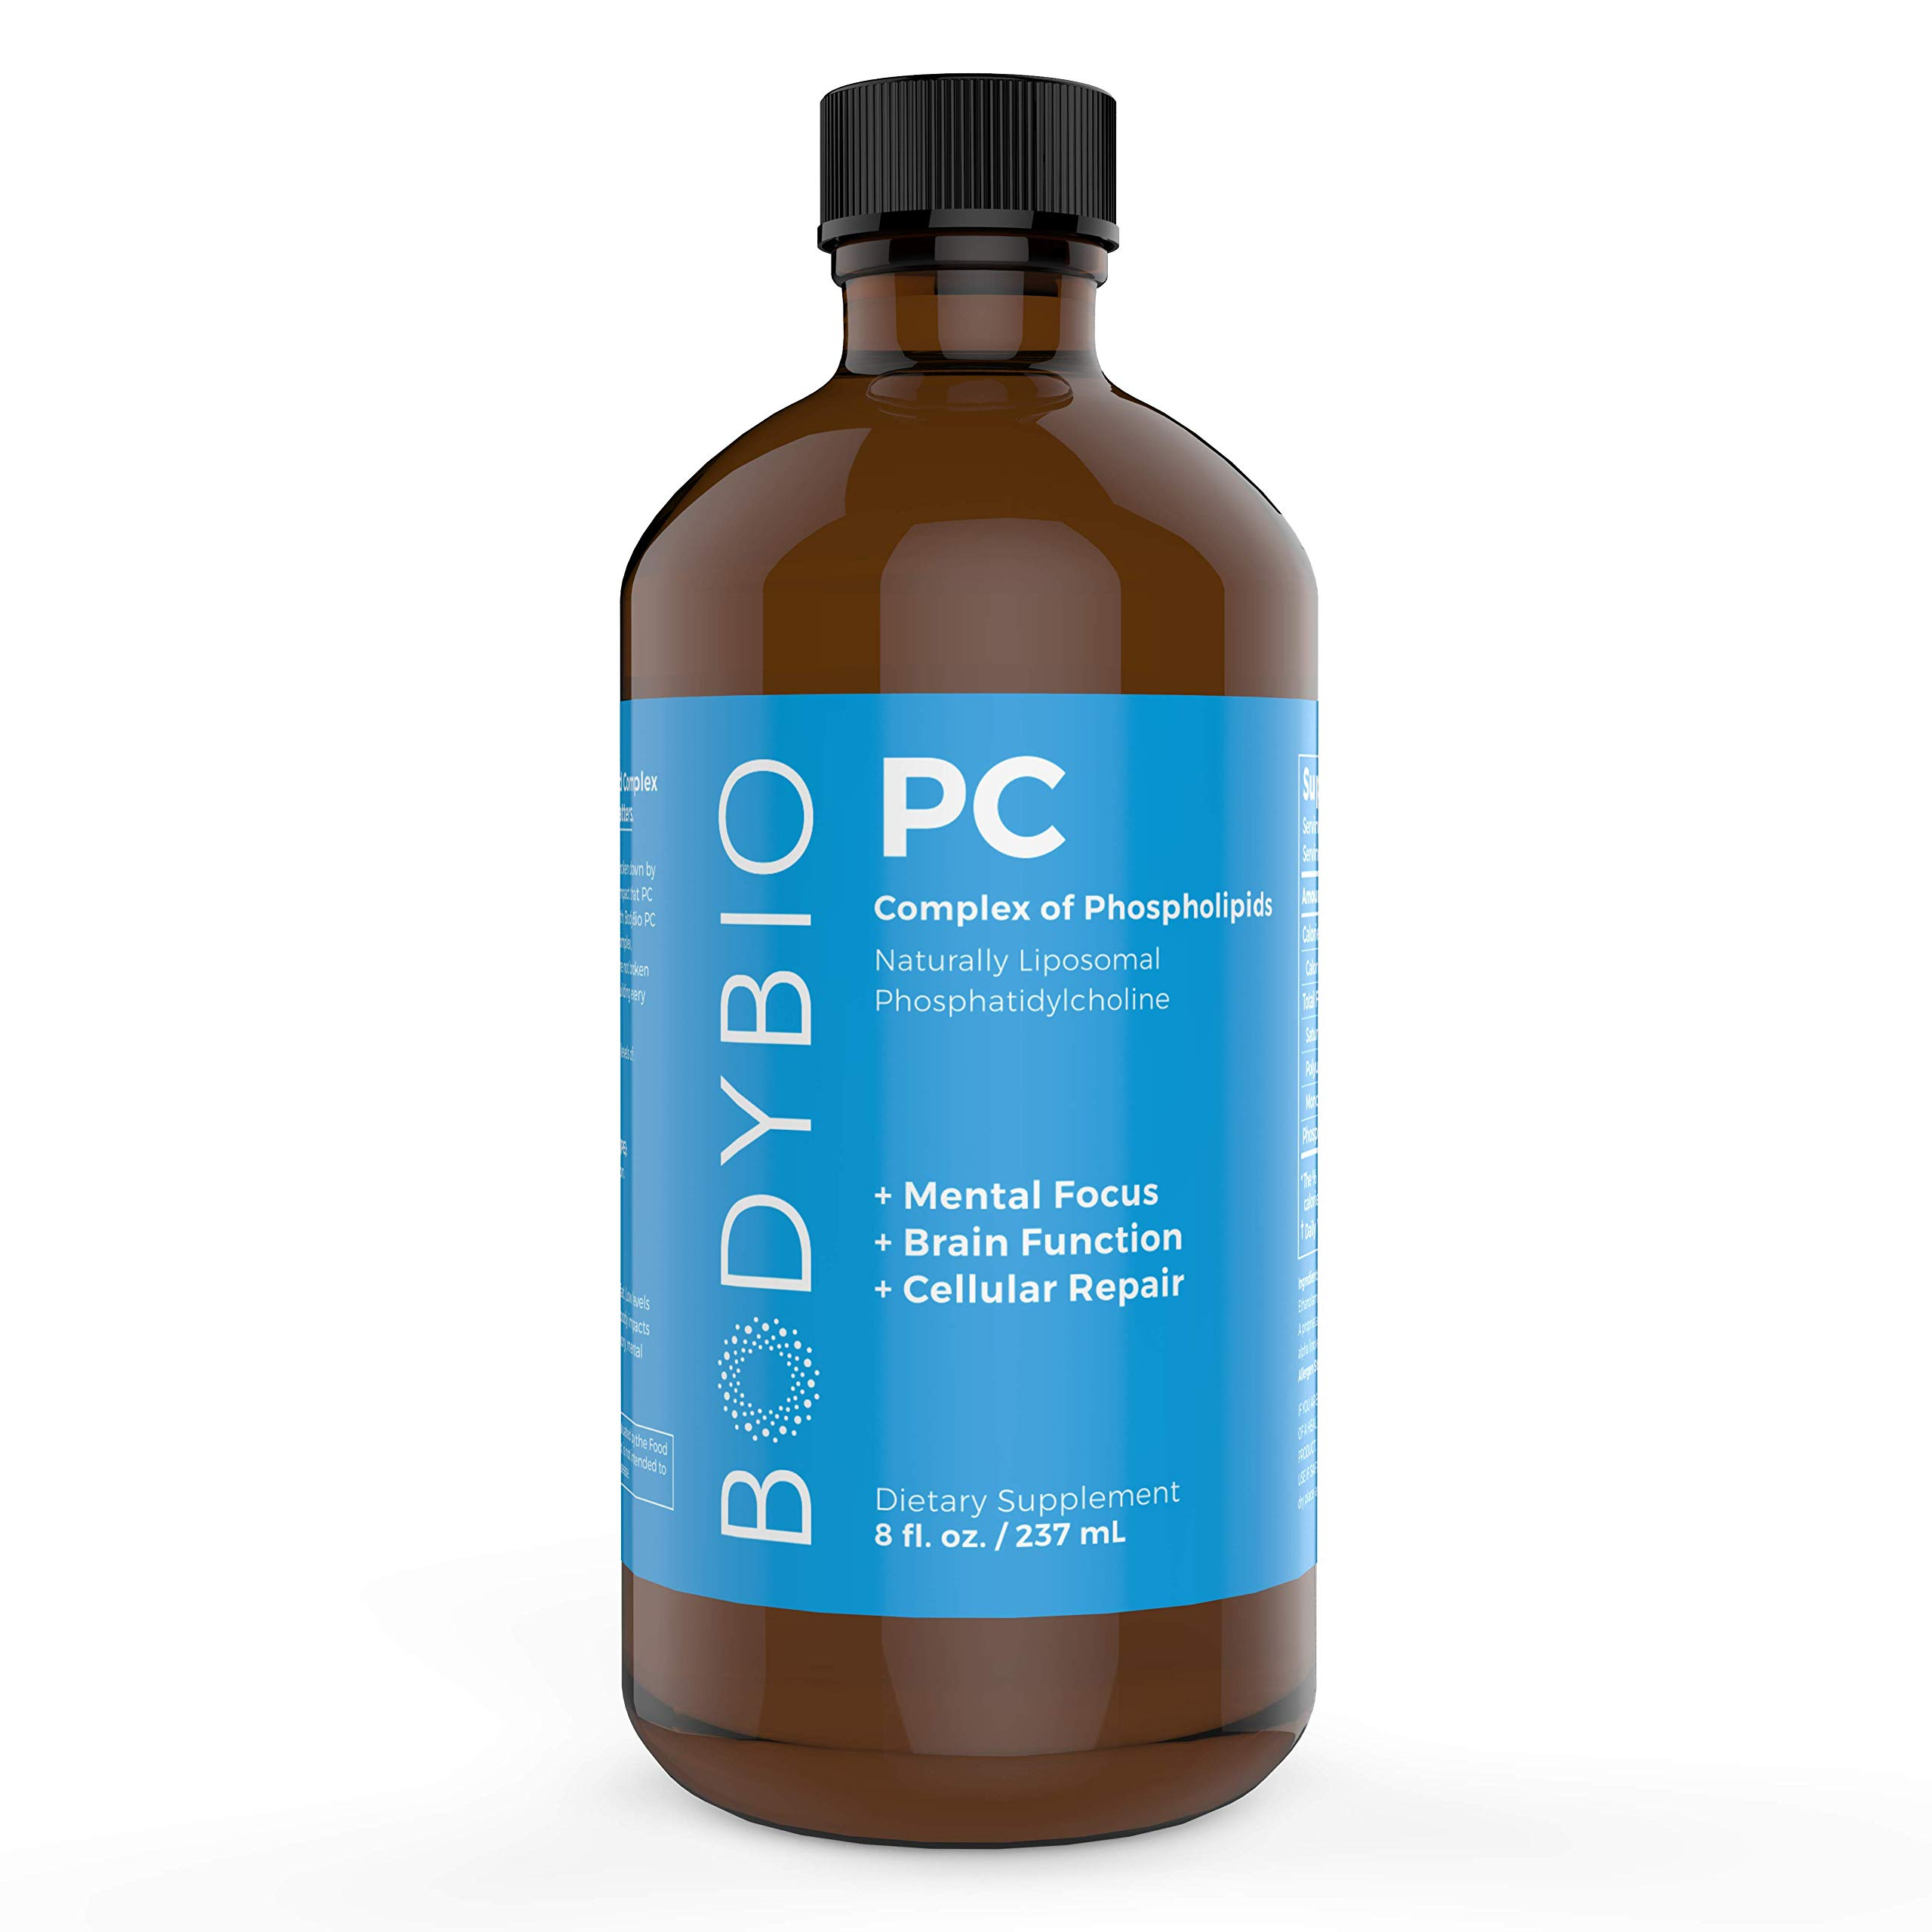 BodyBio - PC Phosphatidylcholine, Liposomal Phospholipid Complex for Cell Health - Enhance Brain Function, Focus, Memory & Clarity - Microbiome Support - Science & Research Backed - 8 oz by BodyBio